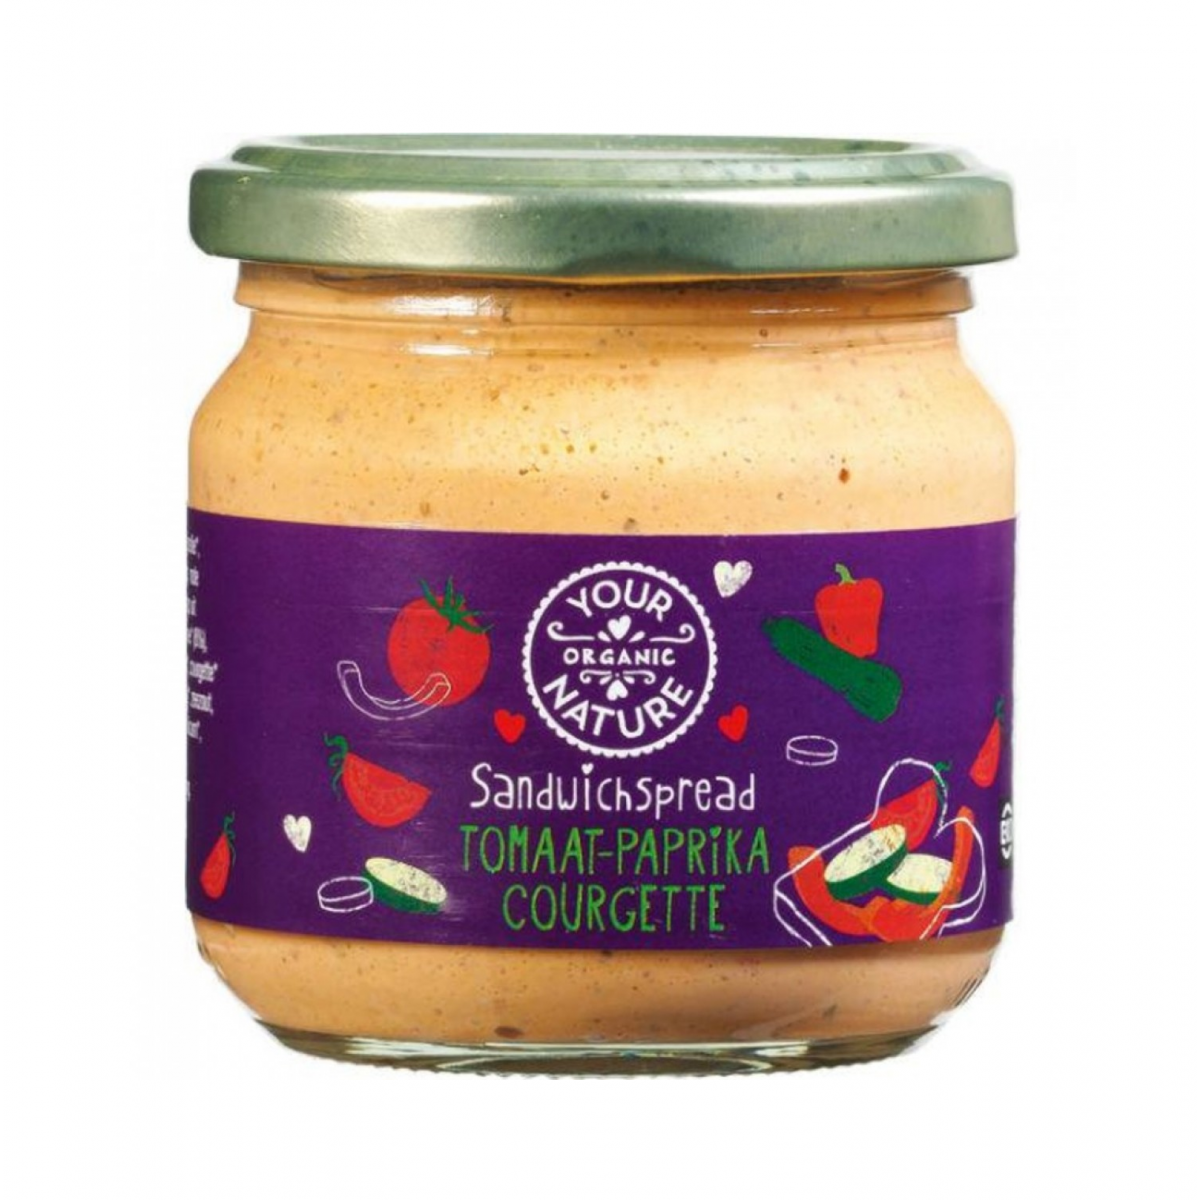 Tomaat-Paprika Courgette Sandwichspread